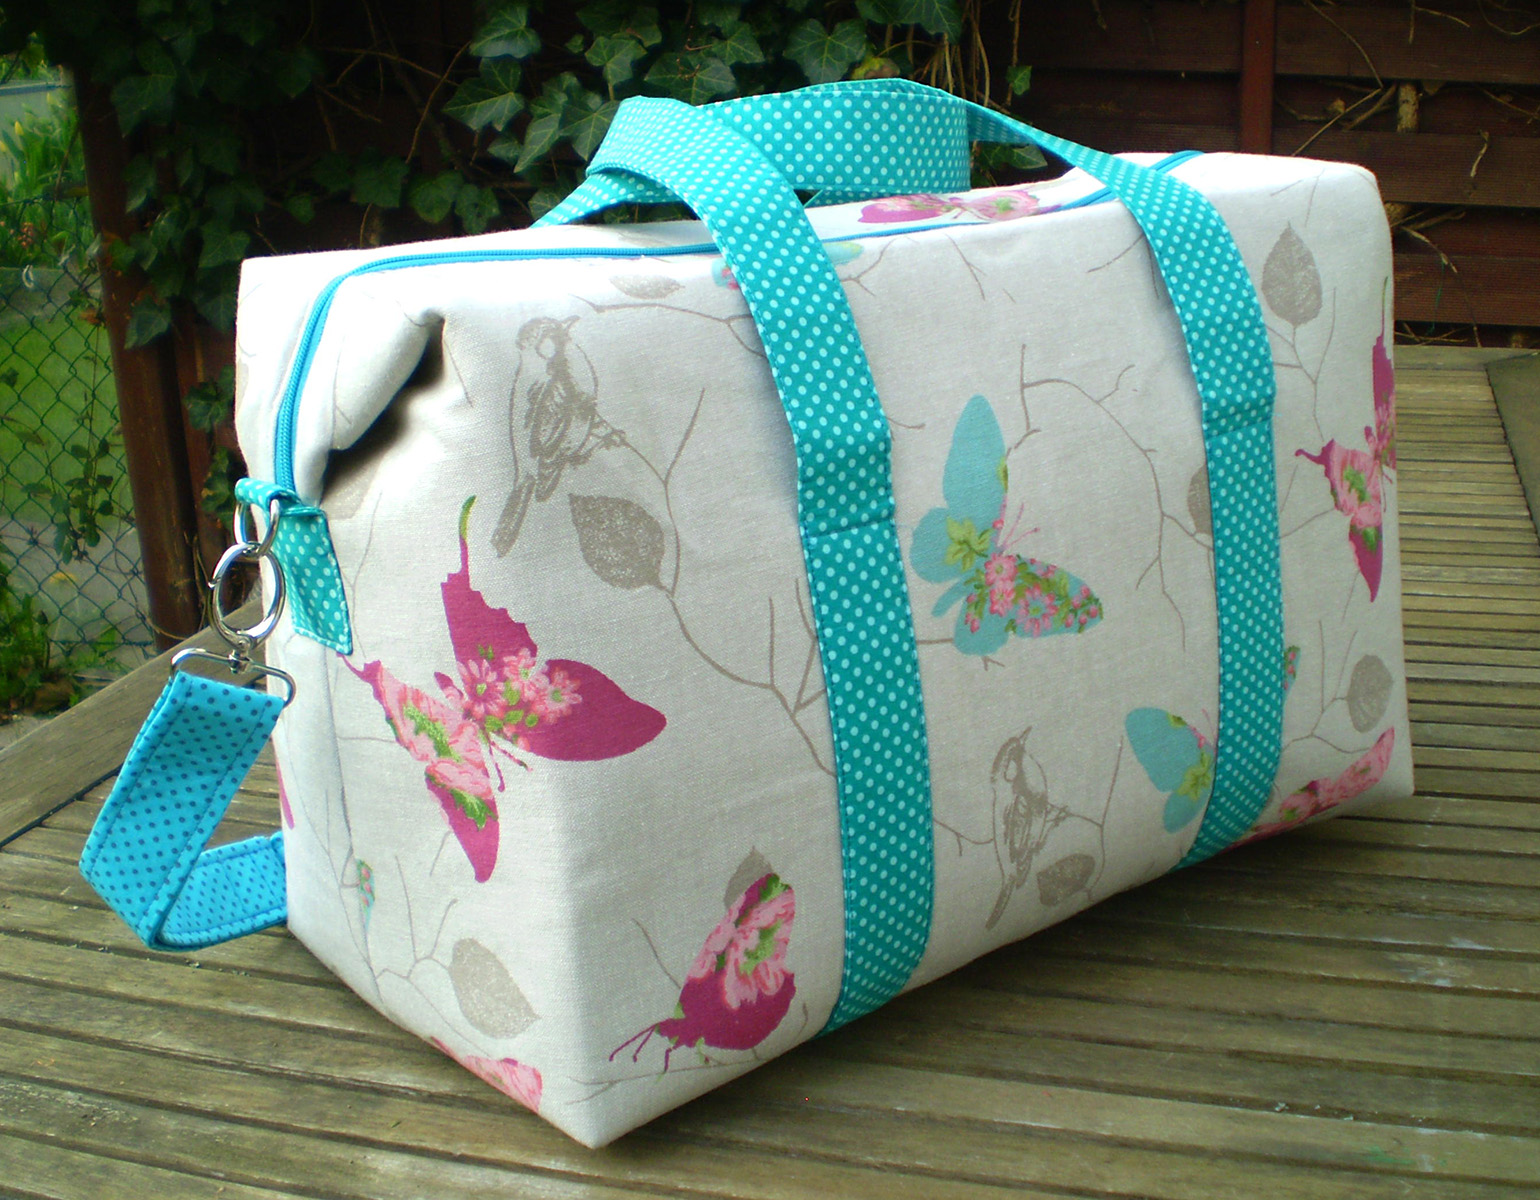 Sew Sweetness Emblem Duffle Bag, sewn by Margareth of Maggie Made Bags